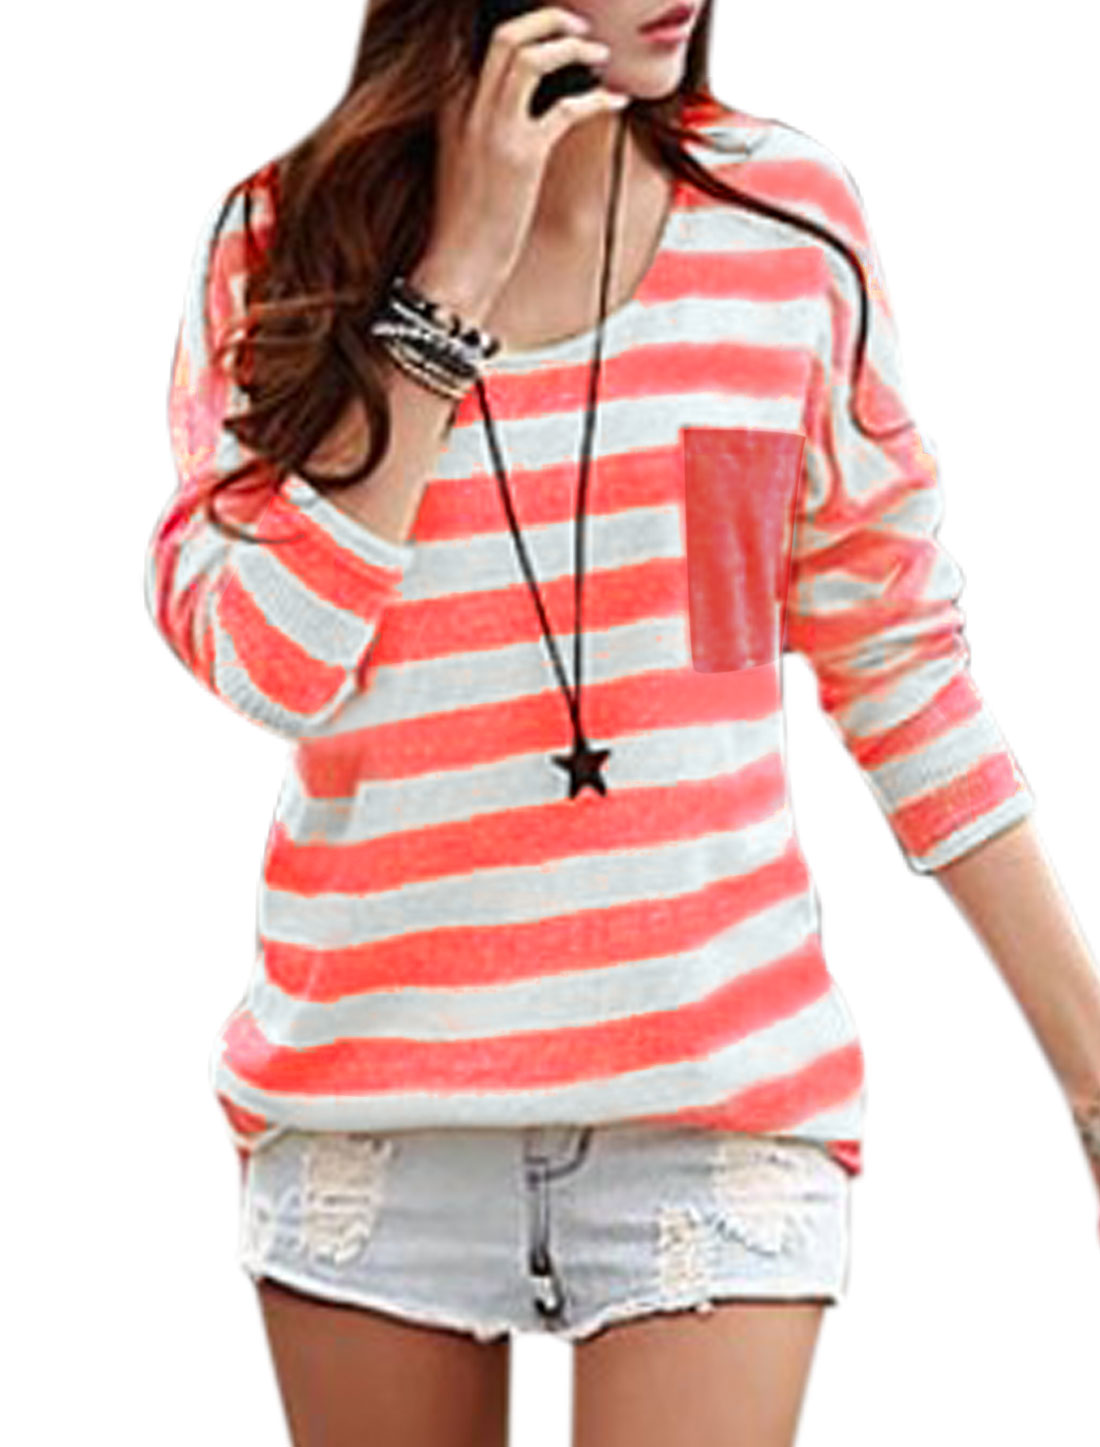 Women Stripes Batwing Sleeves Tunic Knit Shirt Deep Pink White XS